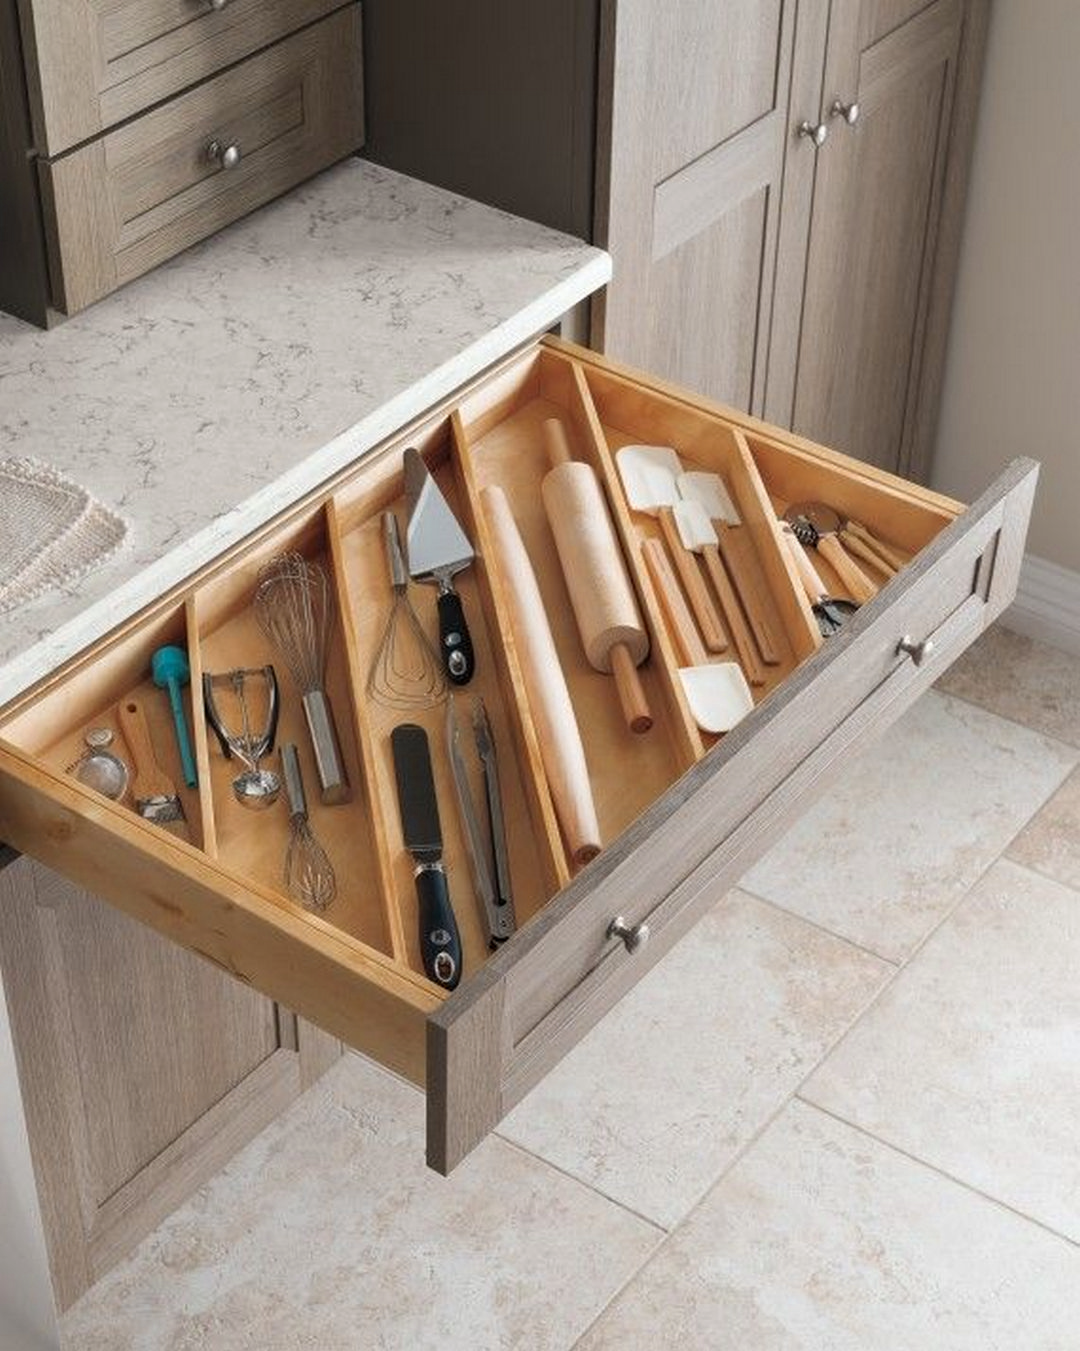 Küchenideen farben  incredibly useful kitchen organization tips for small house